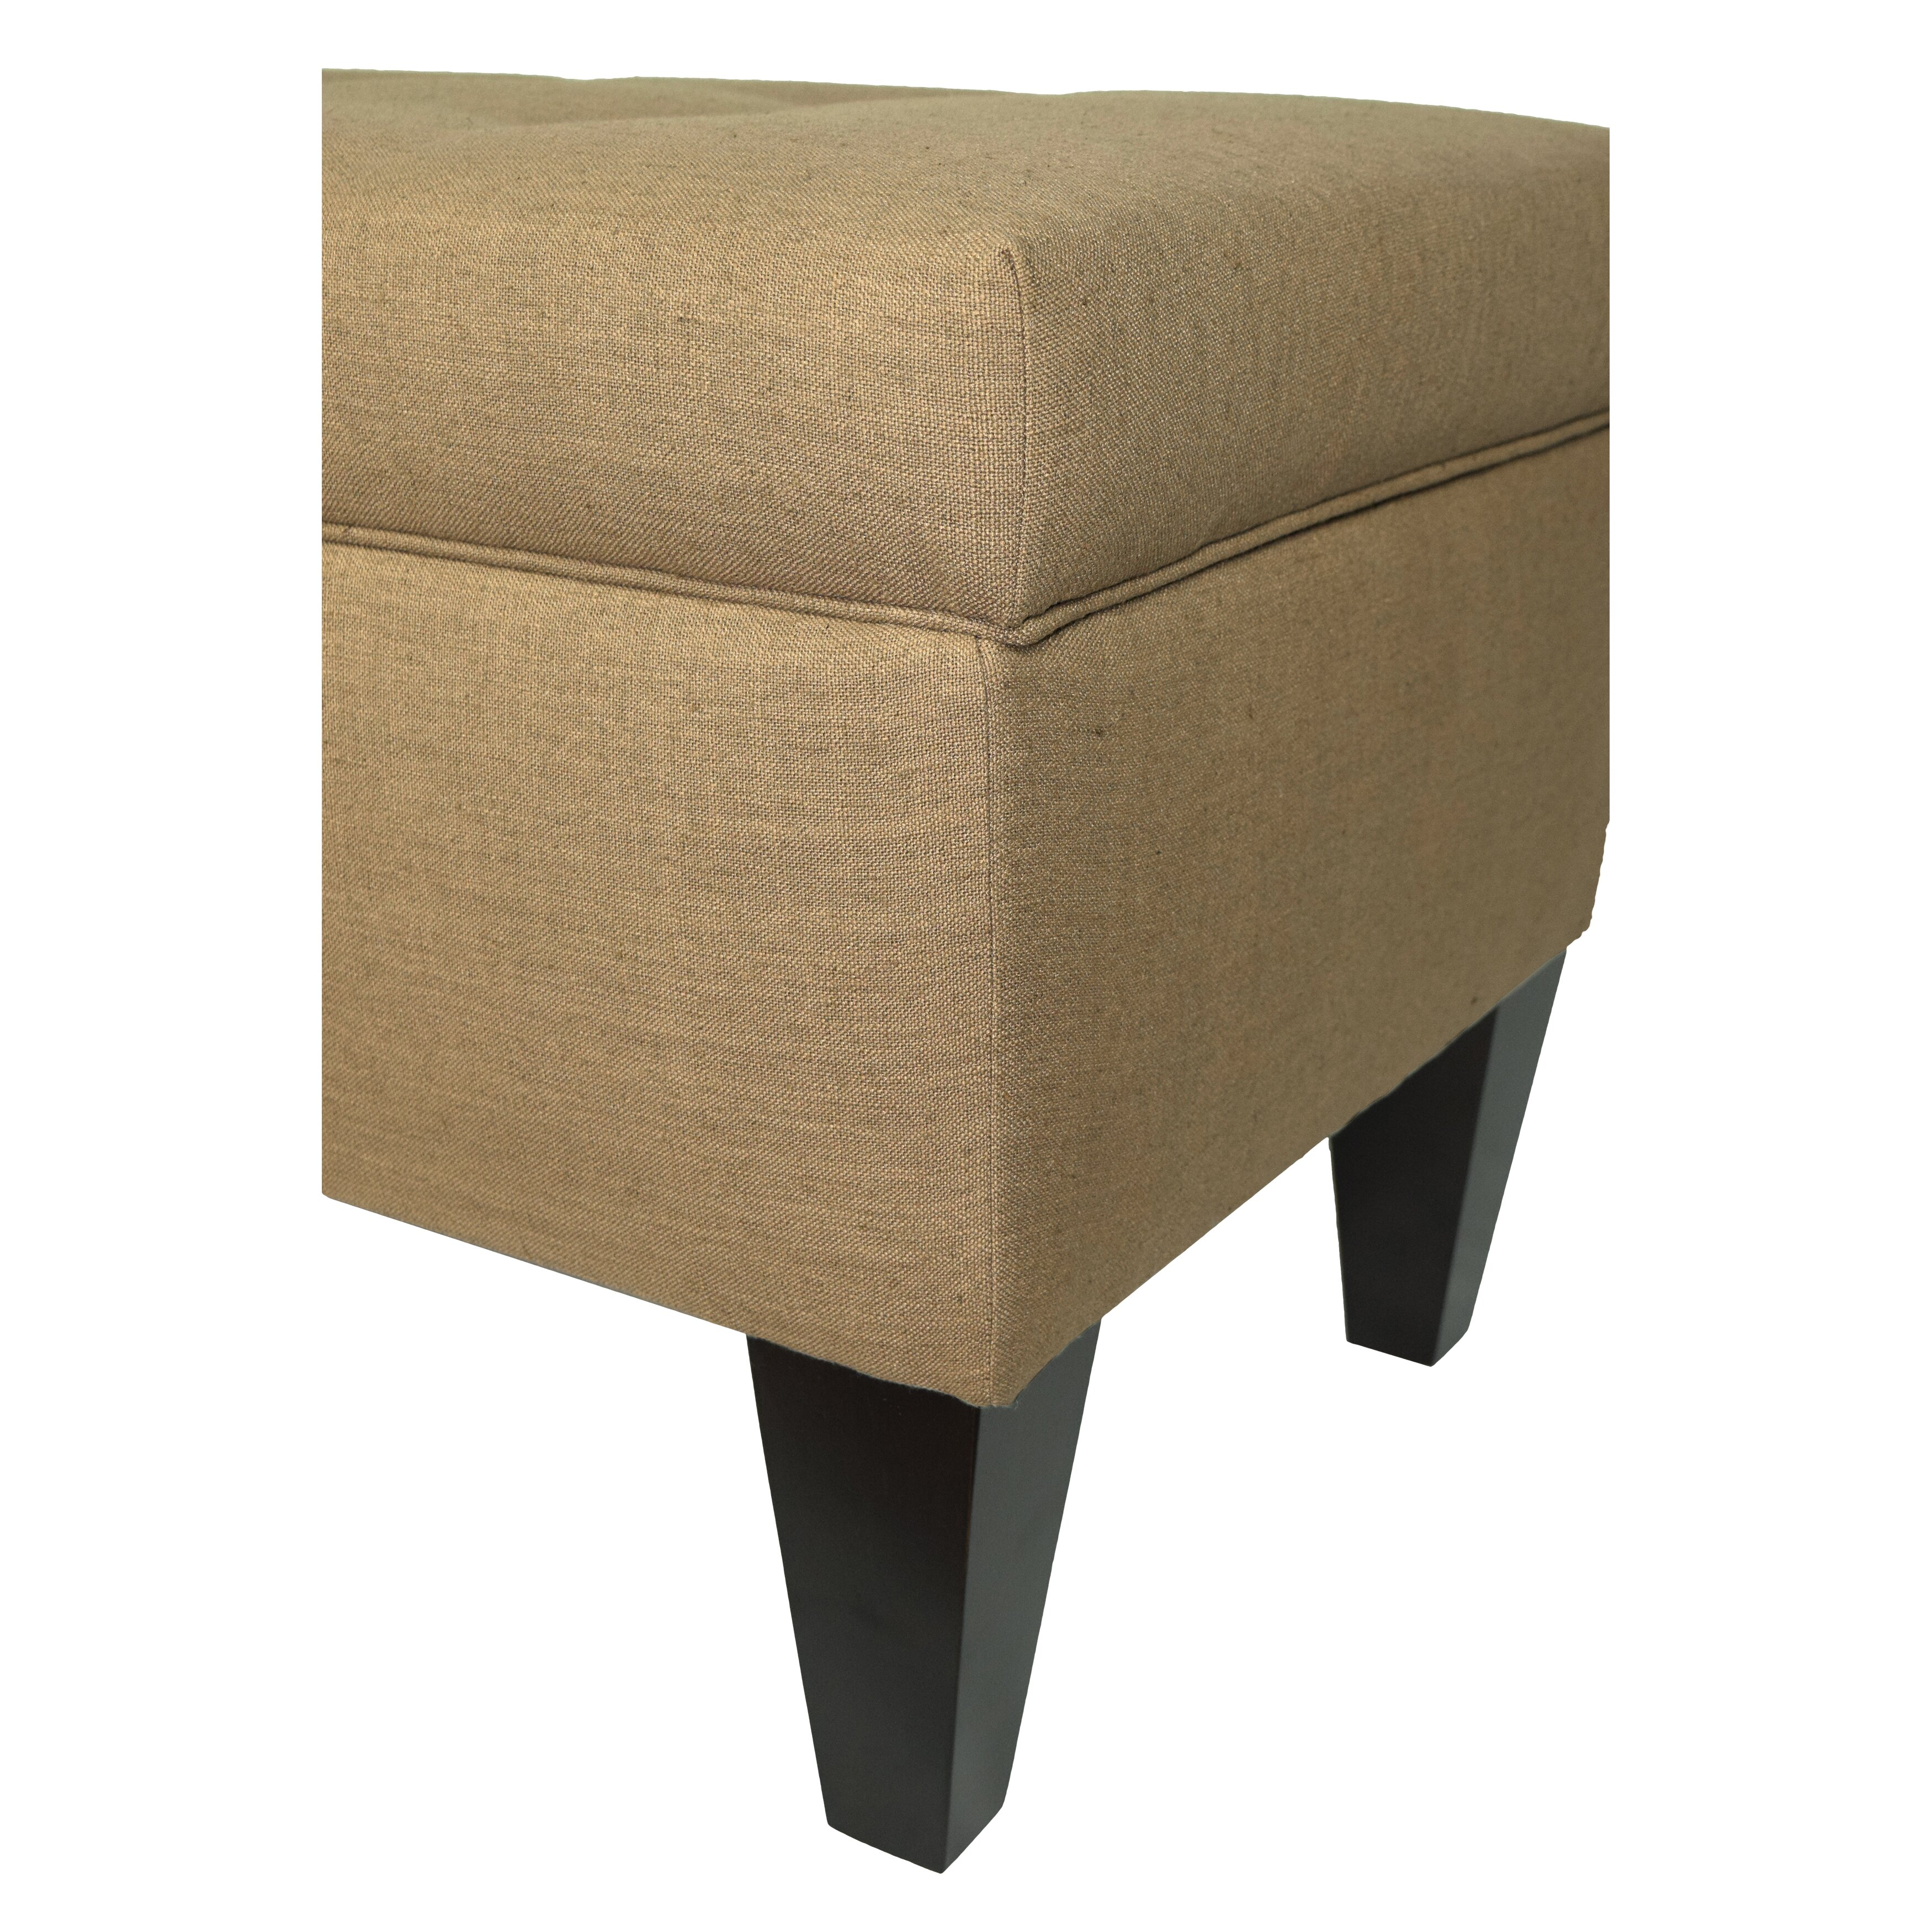 Marvelous photograph of MJLFurniture Allure Wood Storage Bedroom Bench Wayfair with #846B47 color and 3500x3500 pixels